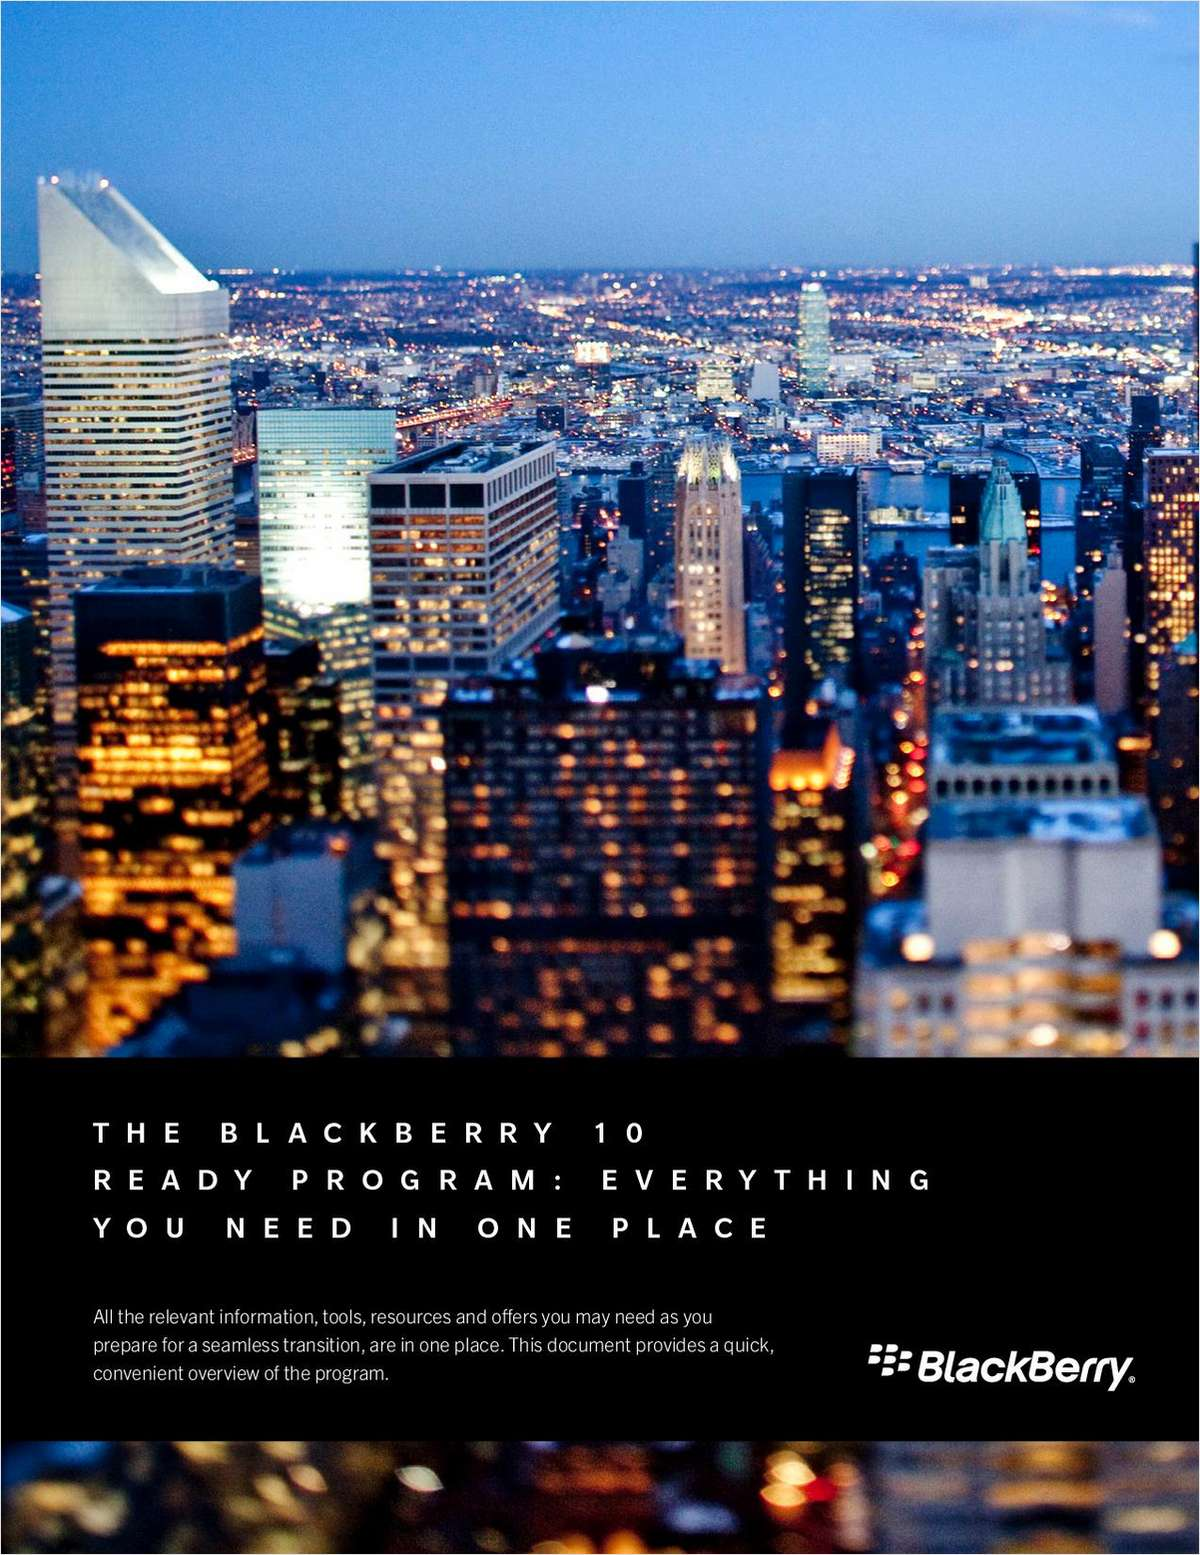 The BlackBerry 10 Ready Program: Everything You Need in One Place